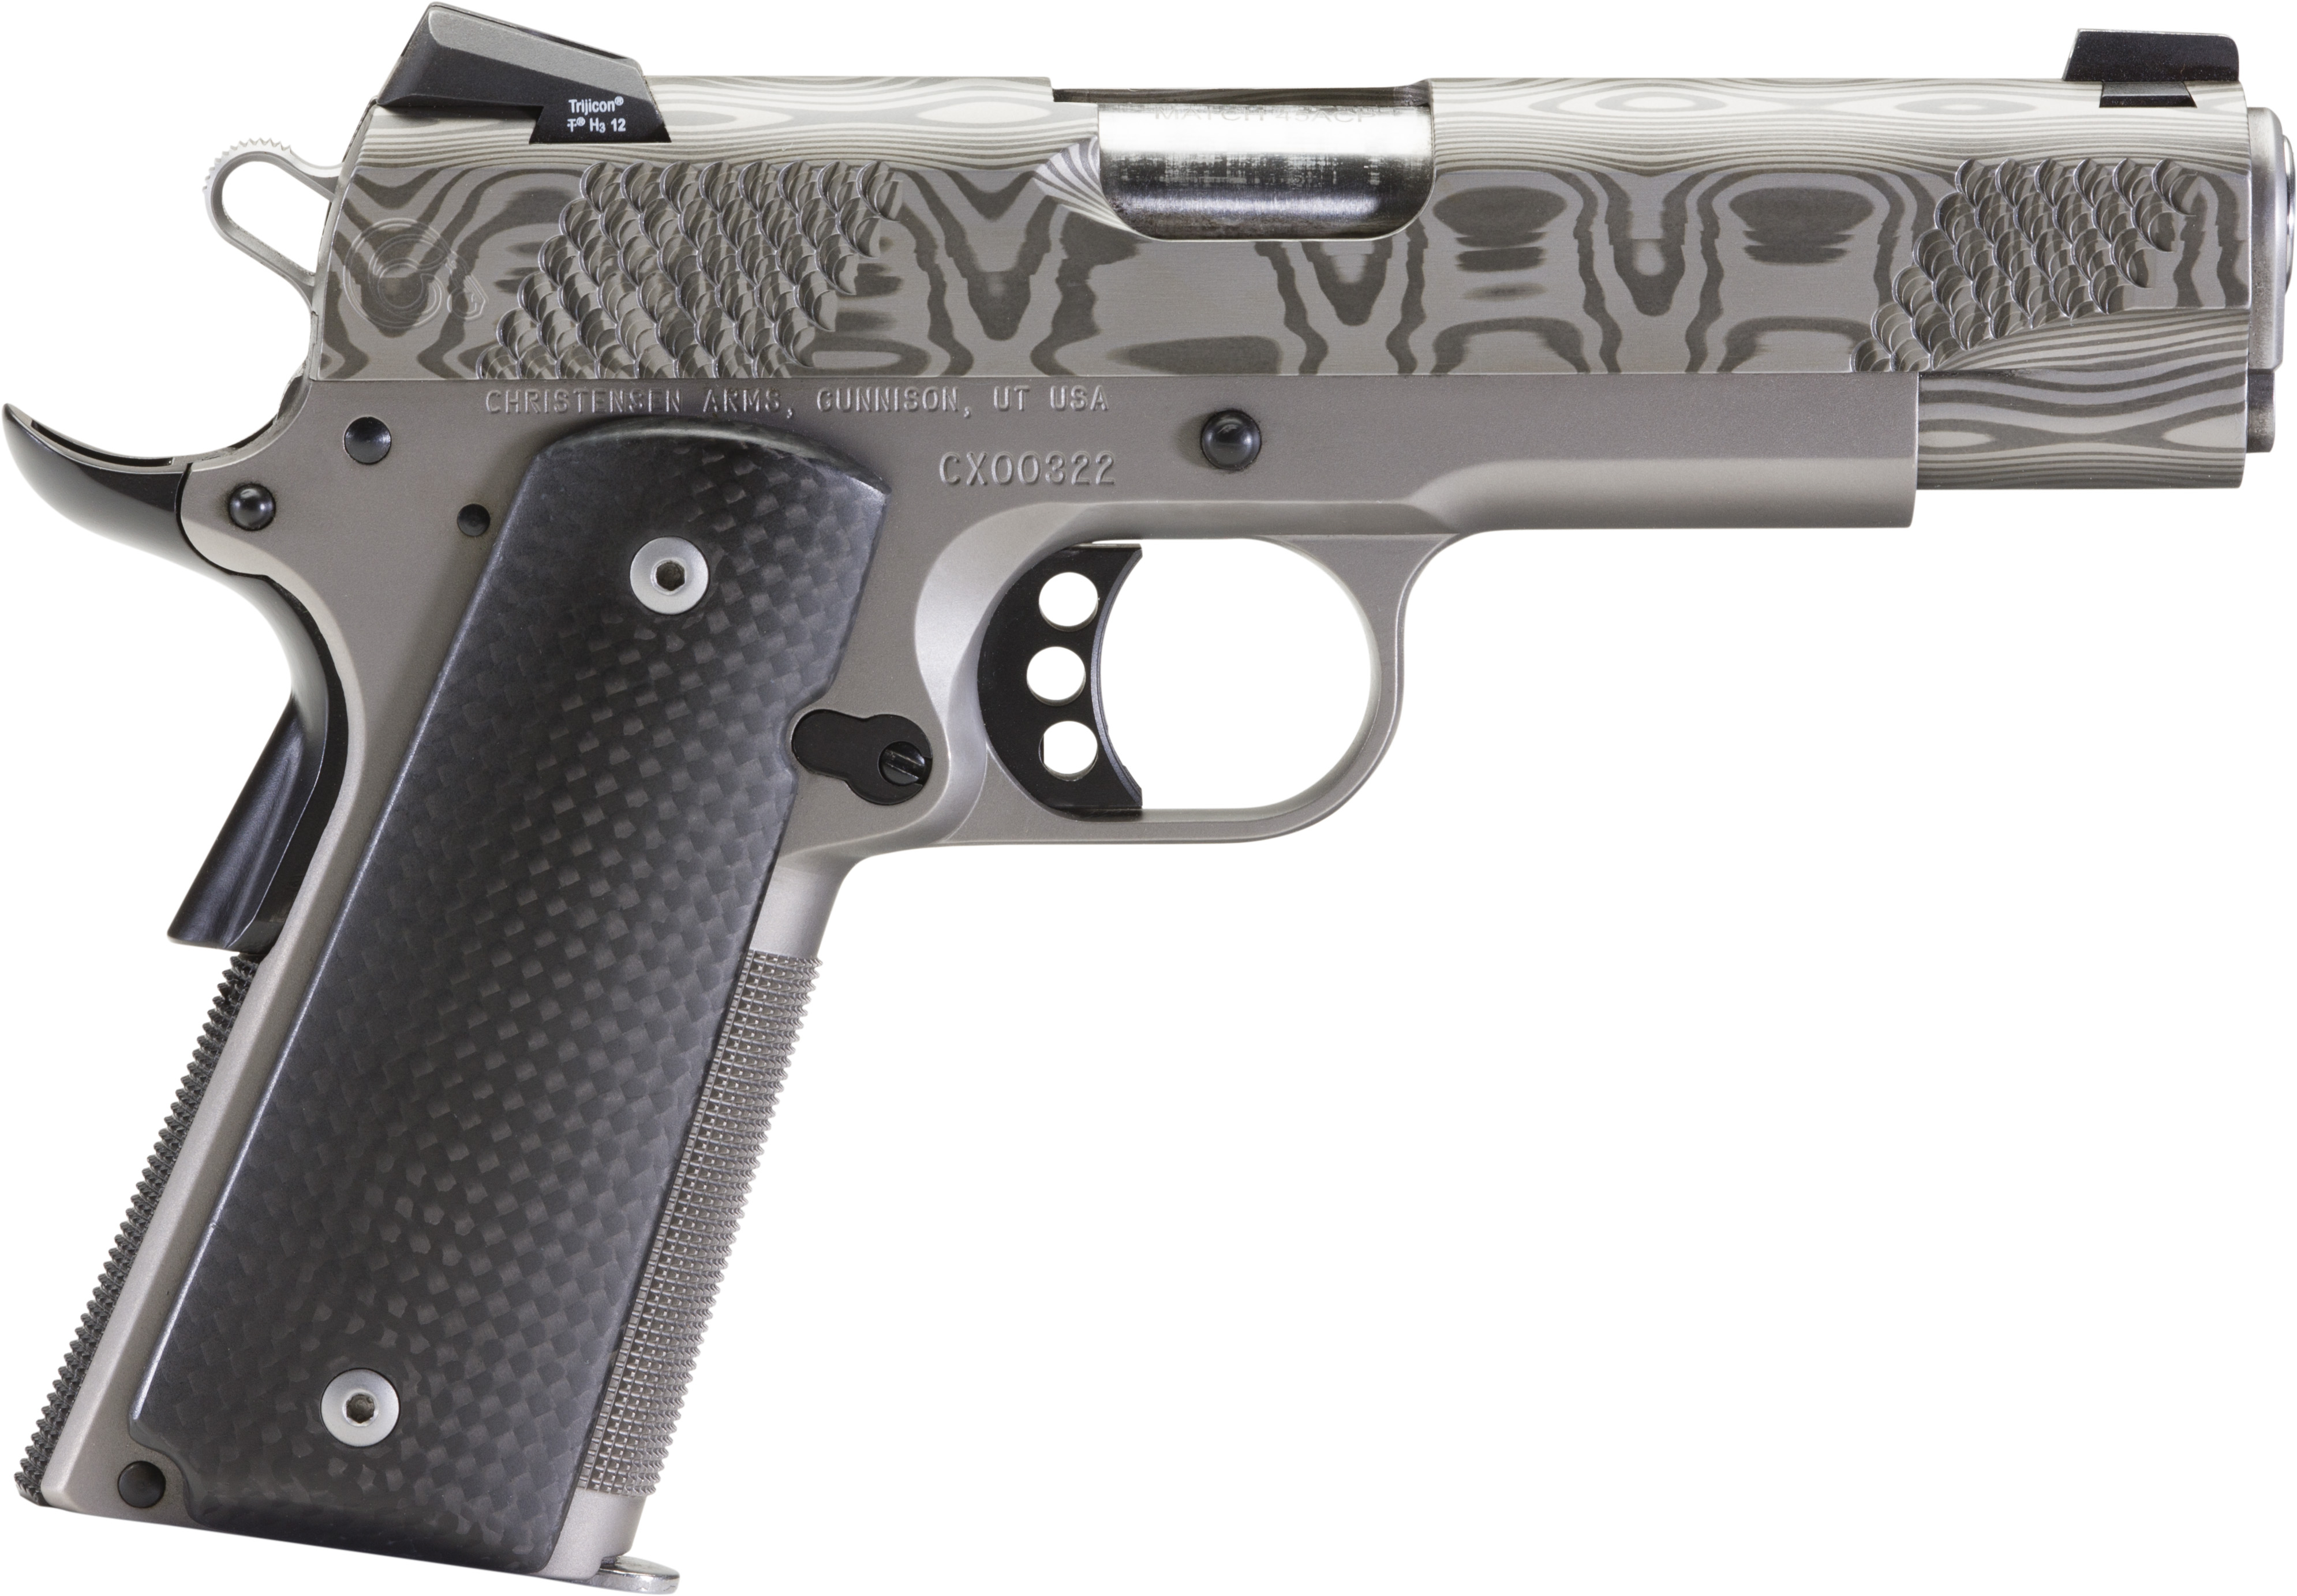 Christensen Arms® Now Produce Frames and Slides for their 1911 ...